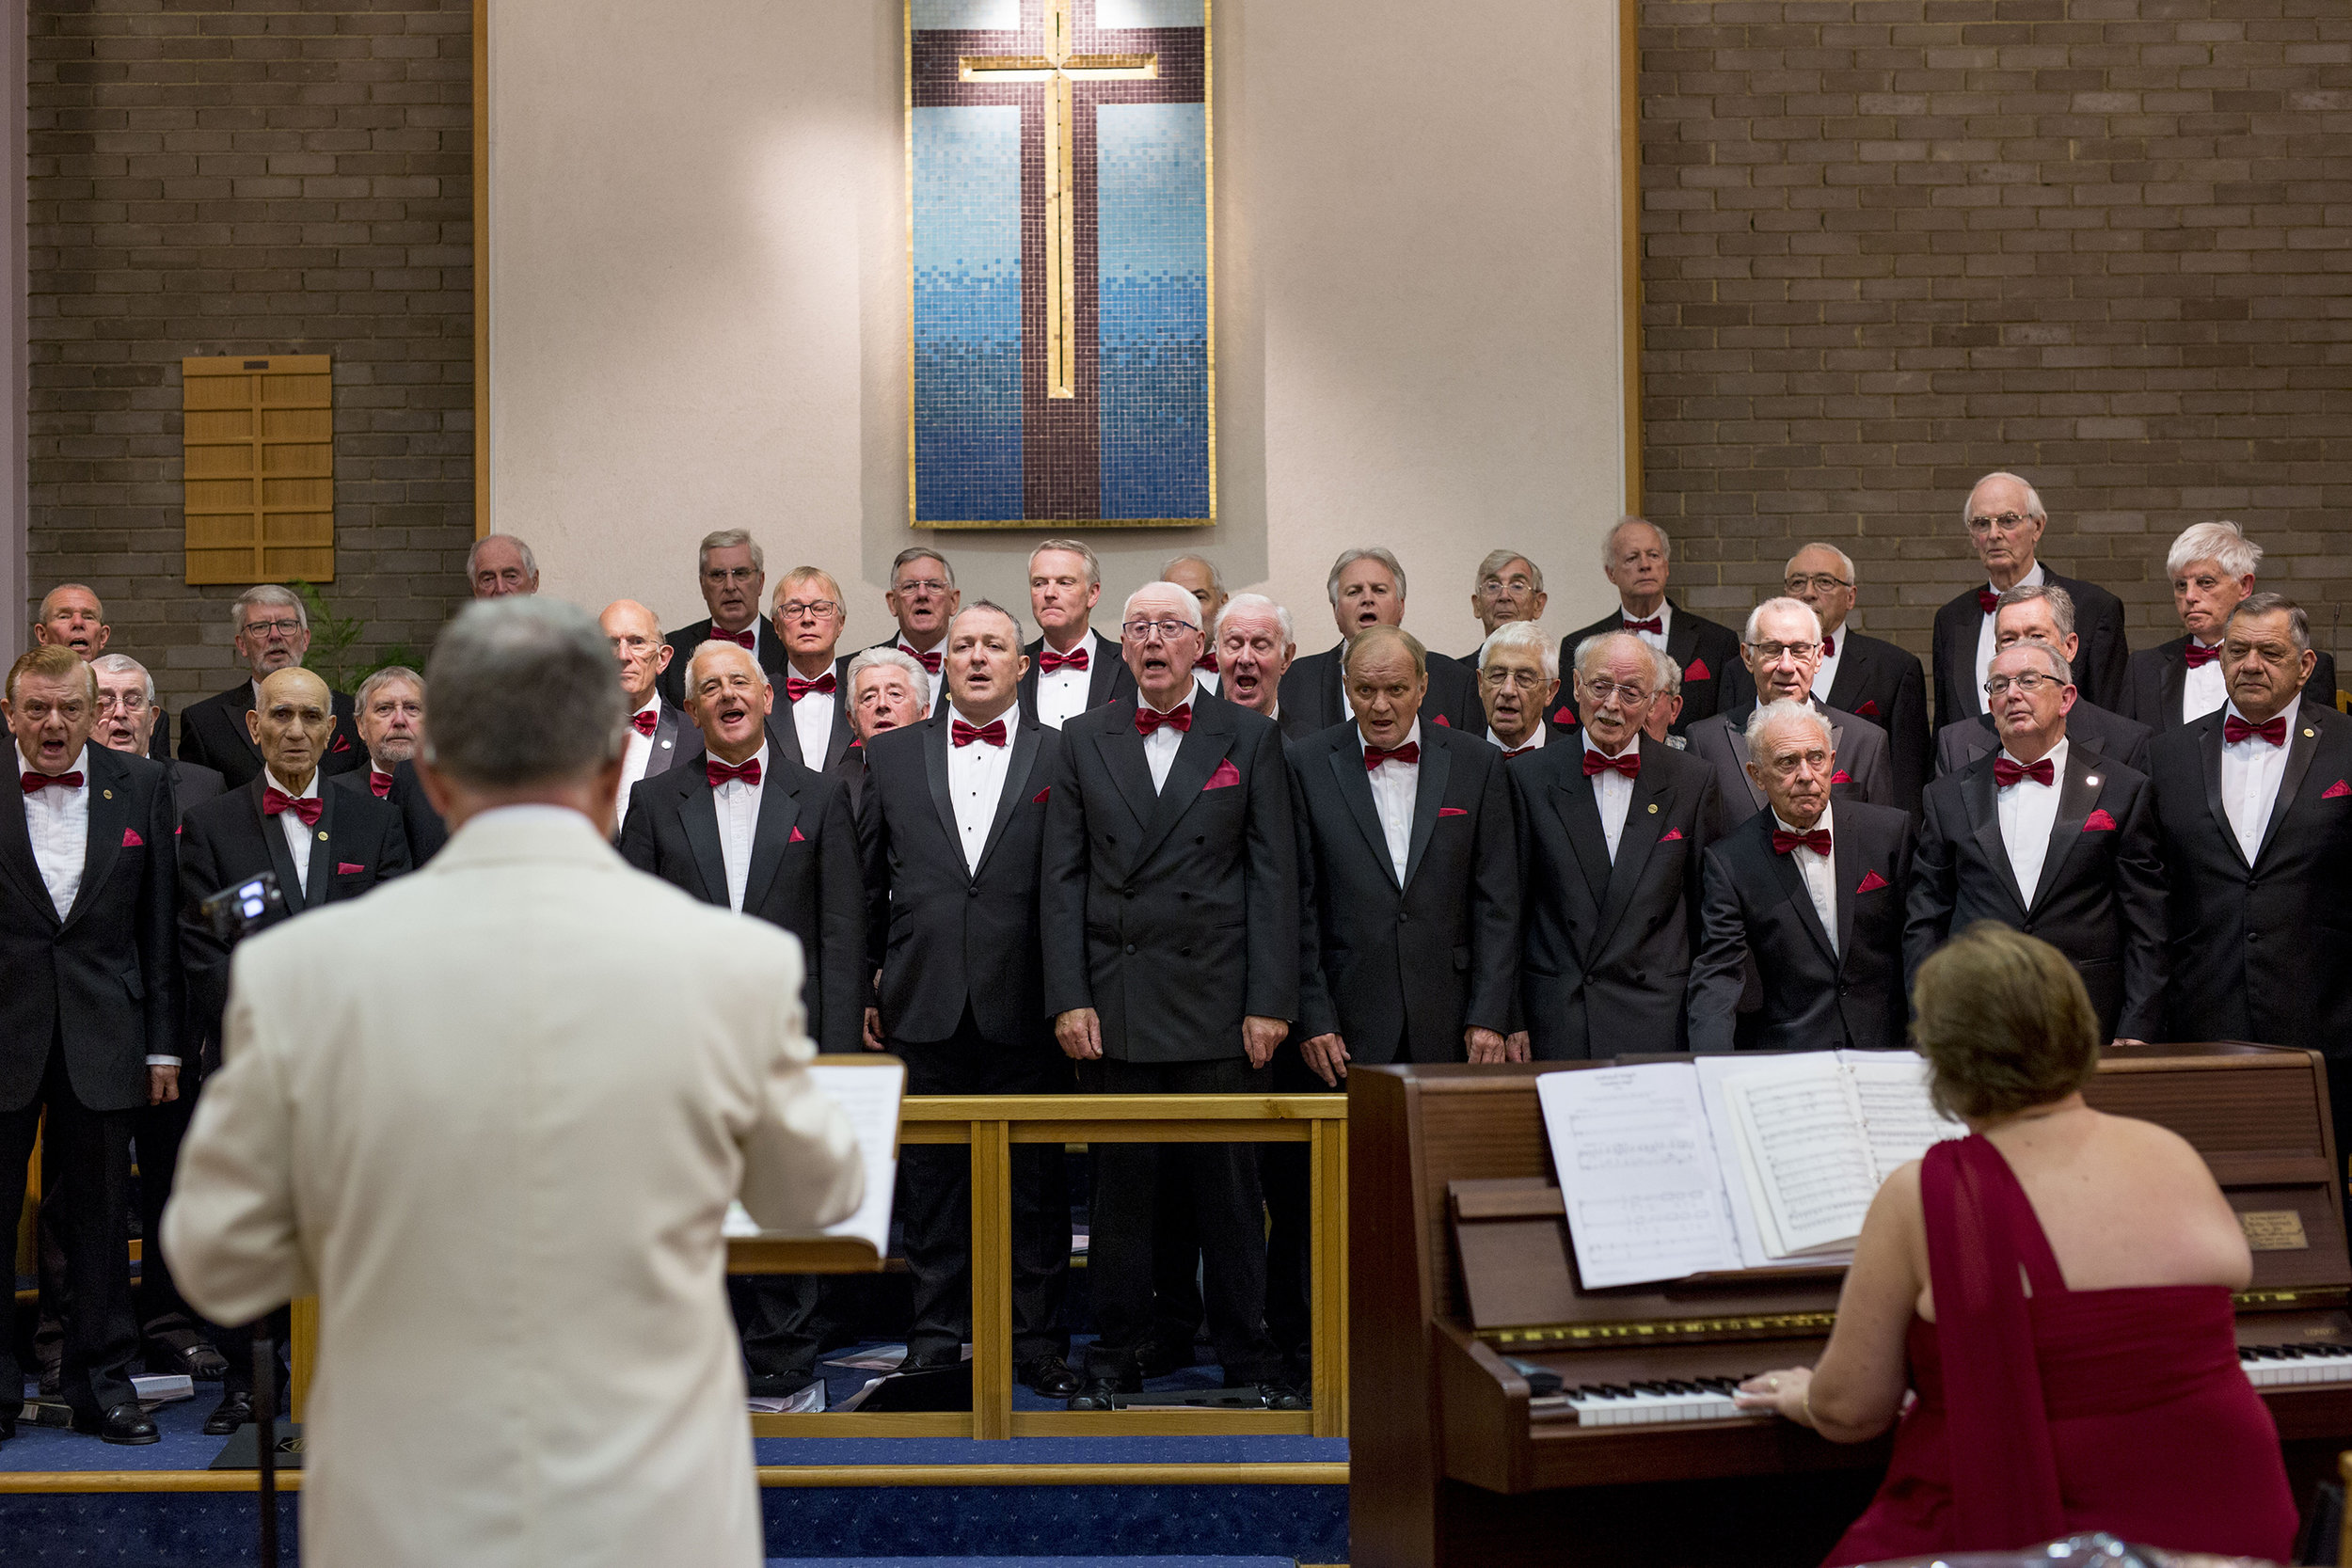 UNP Lloyds 39217 Chelmsford Male Voice Choir009.JPG